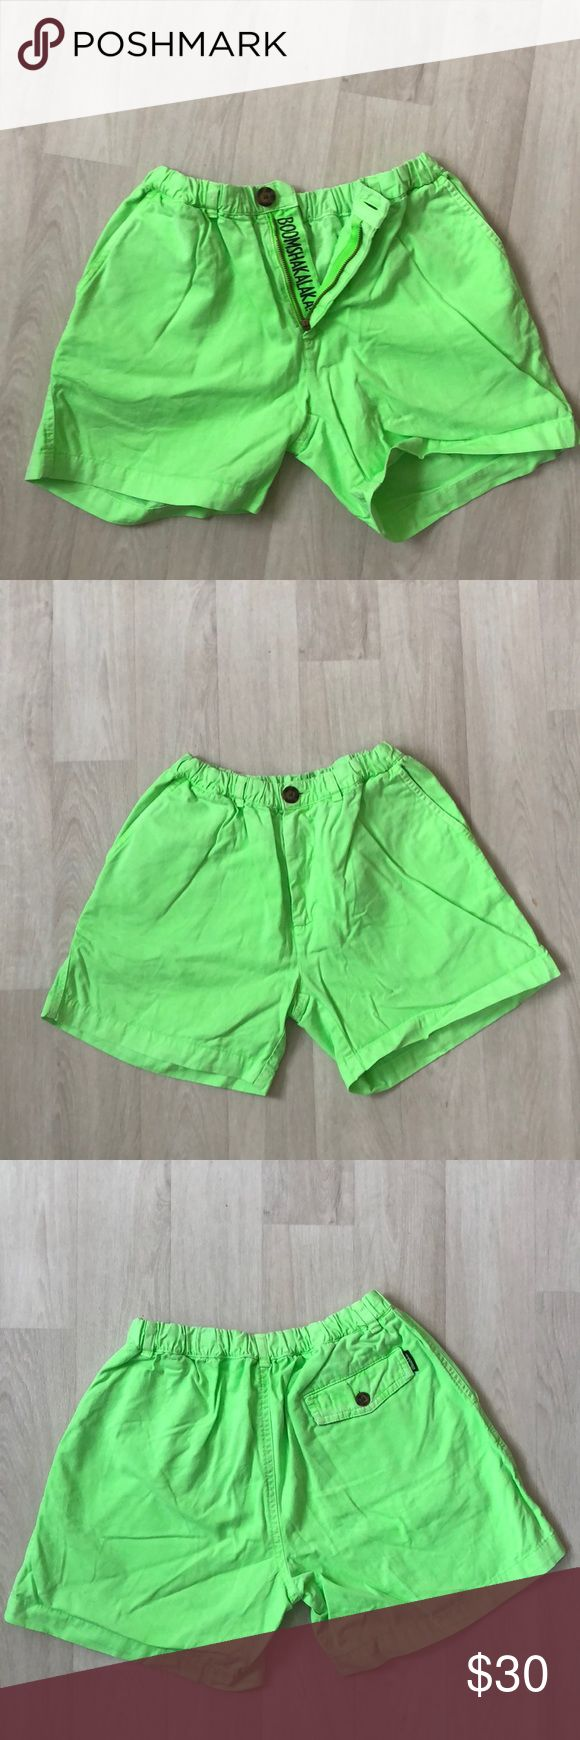 Chubbies Neon Green Shorts Size S Chubbies Neon Green Shorts Size S. Trying to clean out my closet, no trade requests please! chubbies Shorts